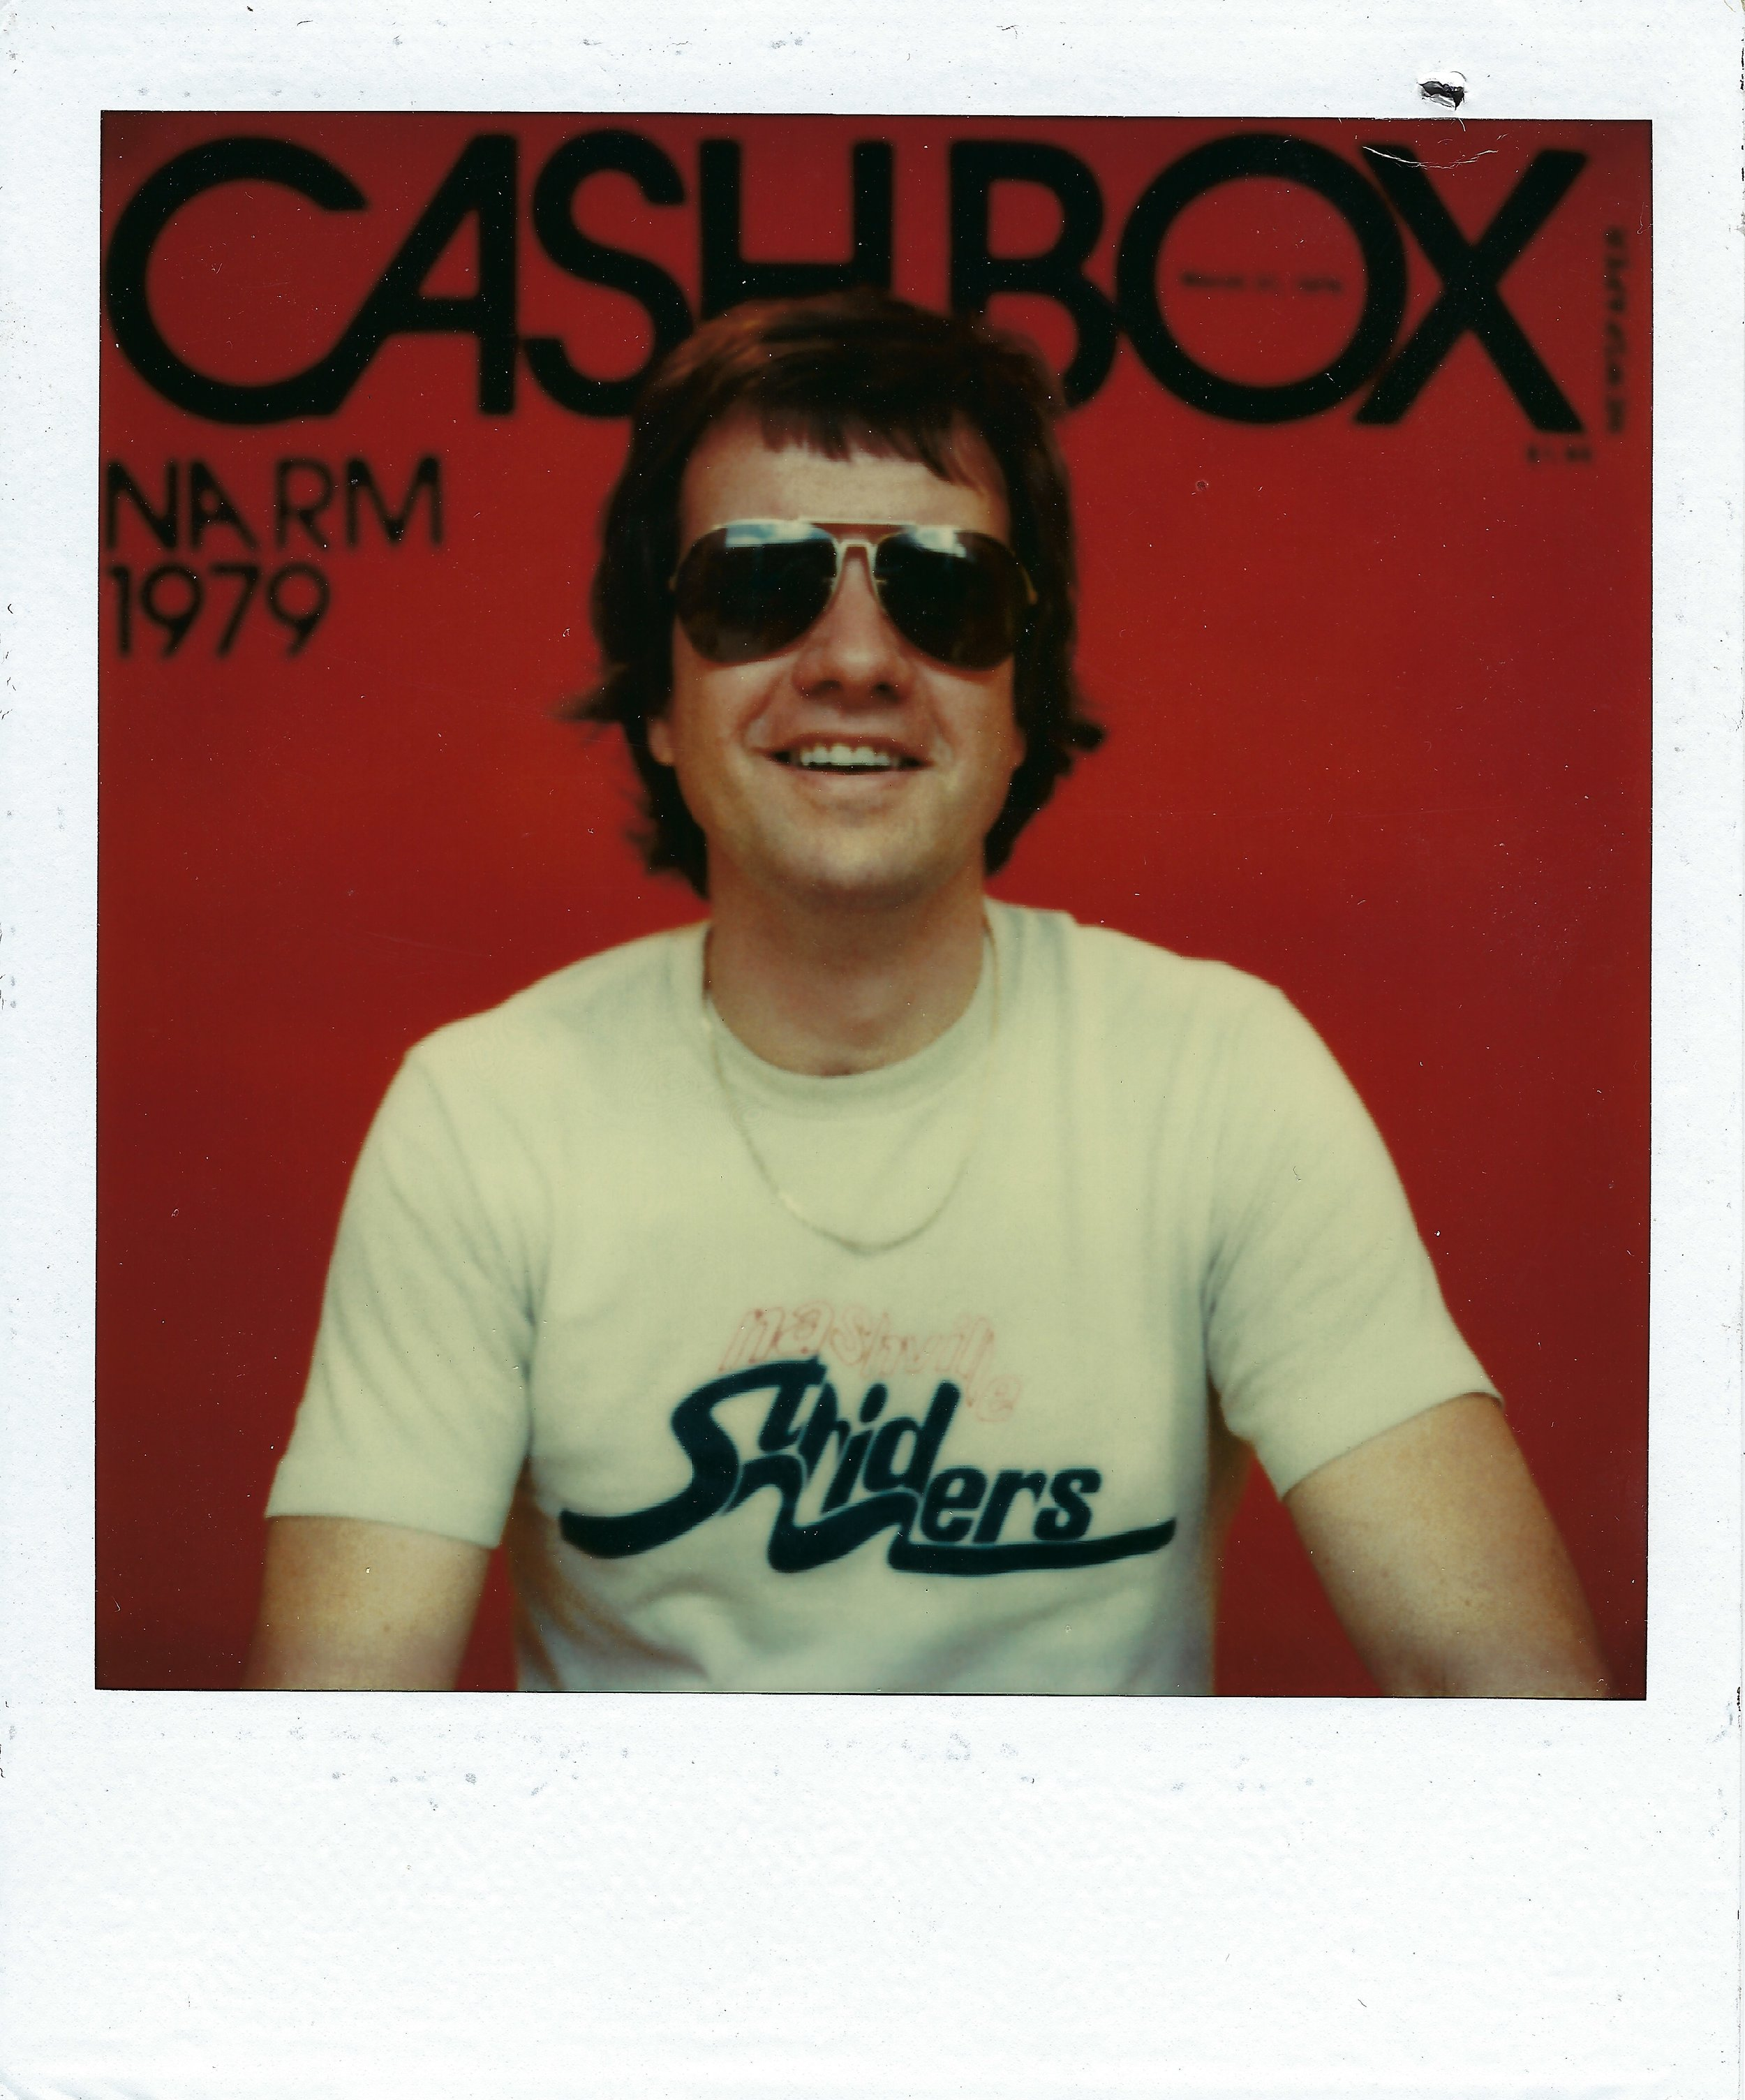 Buzz Cason - Cashbox Polaroid.jpeg